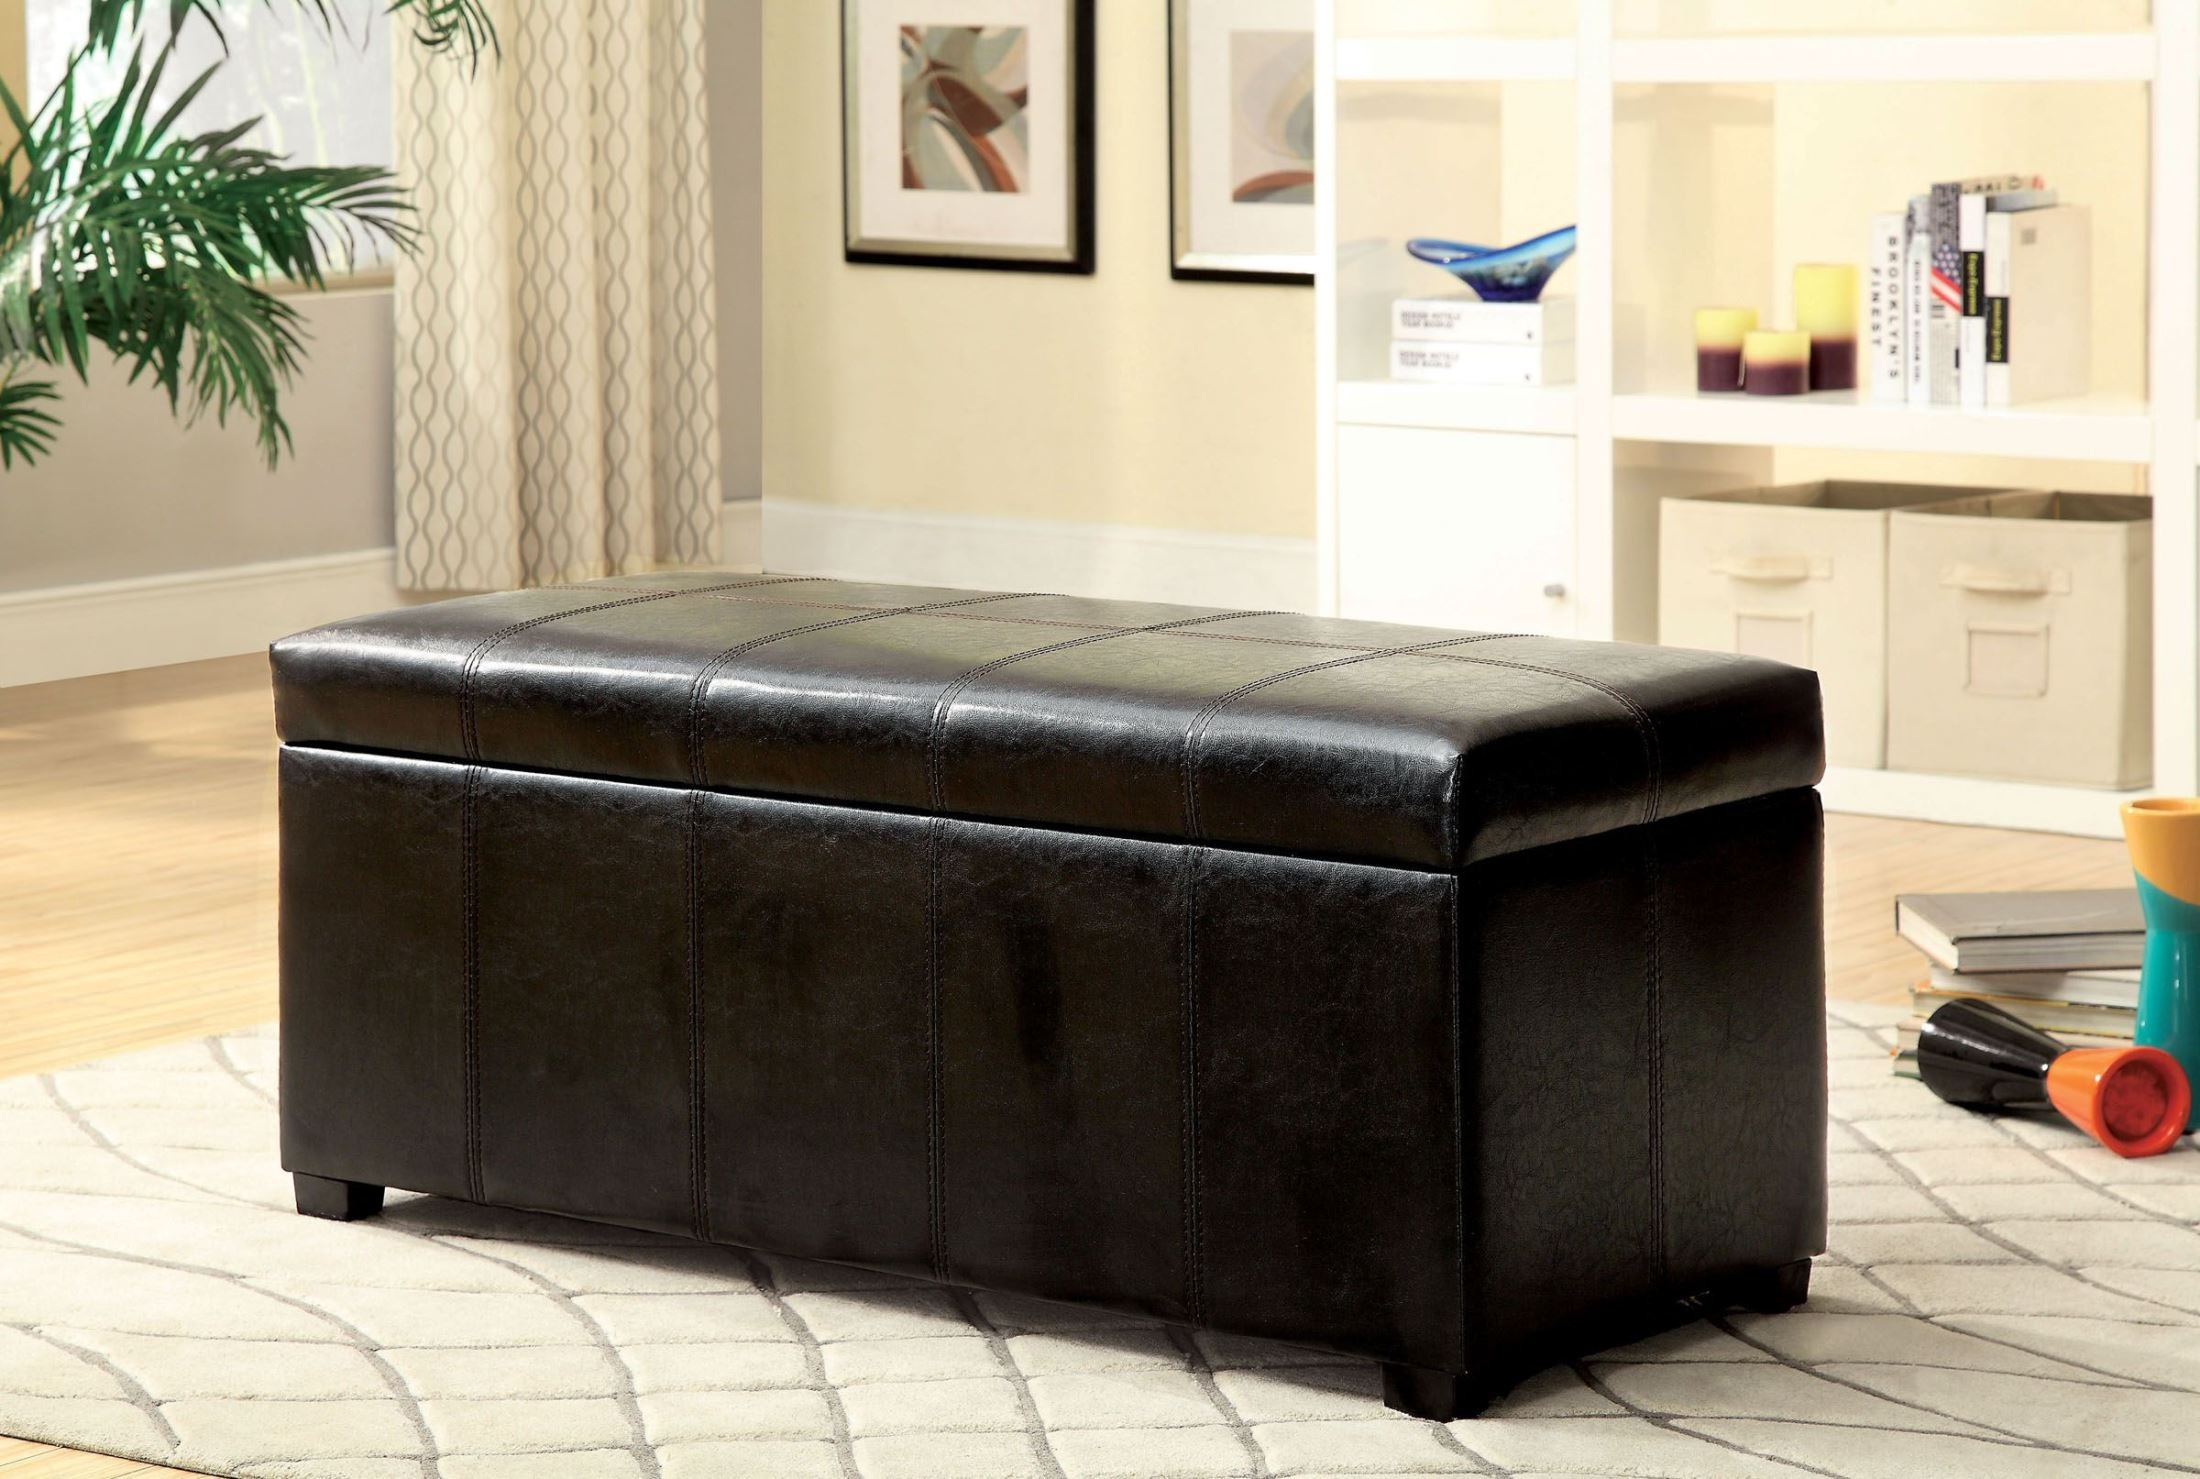 Polson Brown Storage Bench From Furniture Of America Cm Bn6198 Coleman Furniture